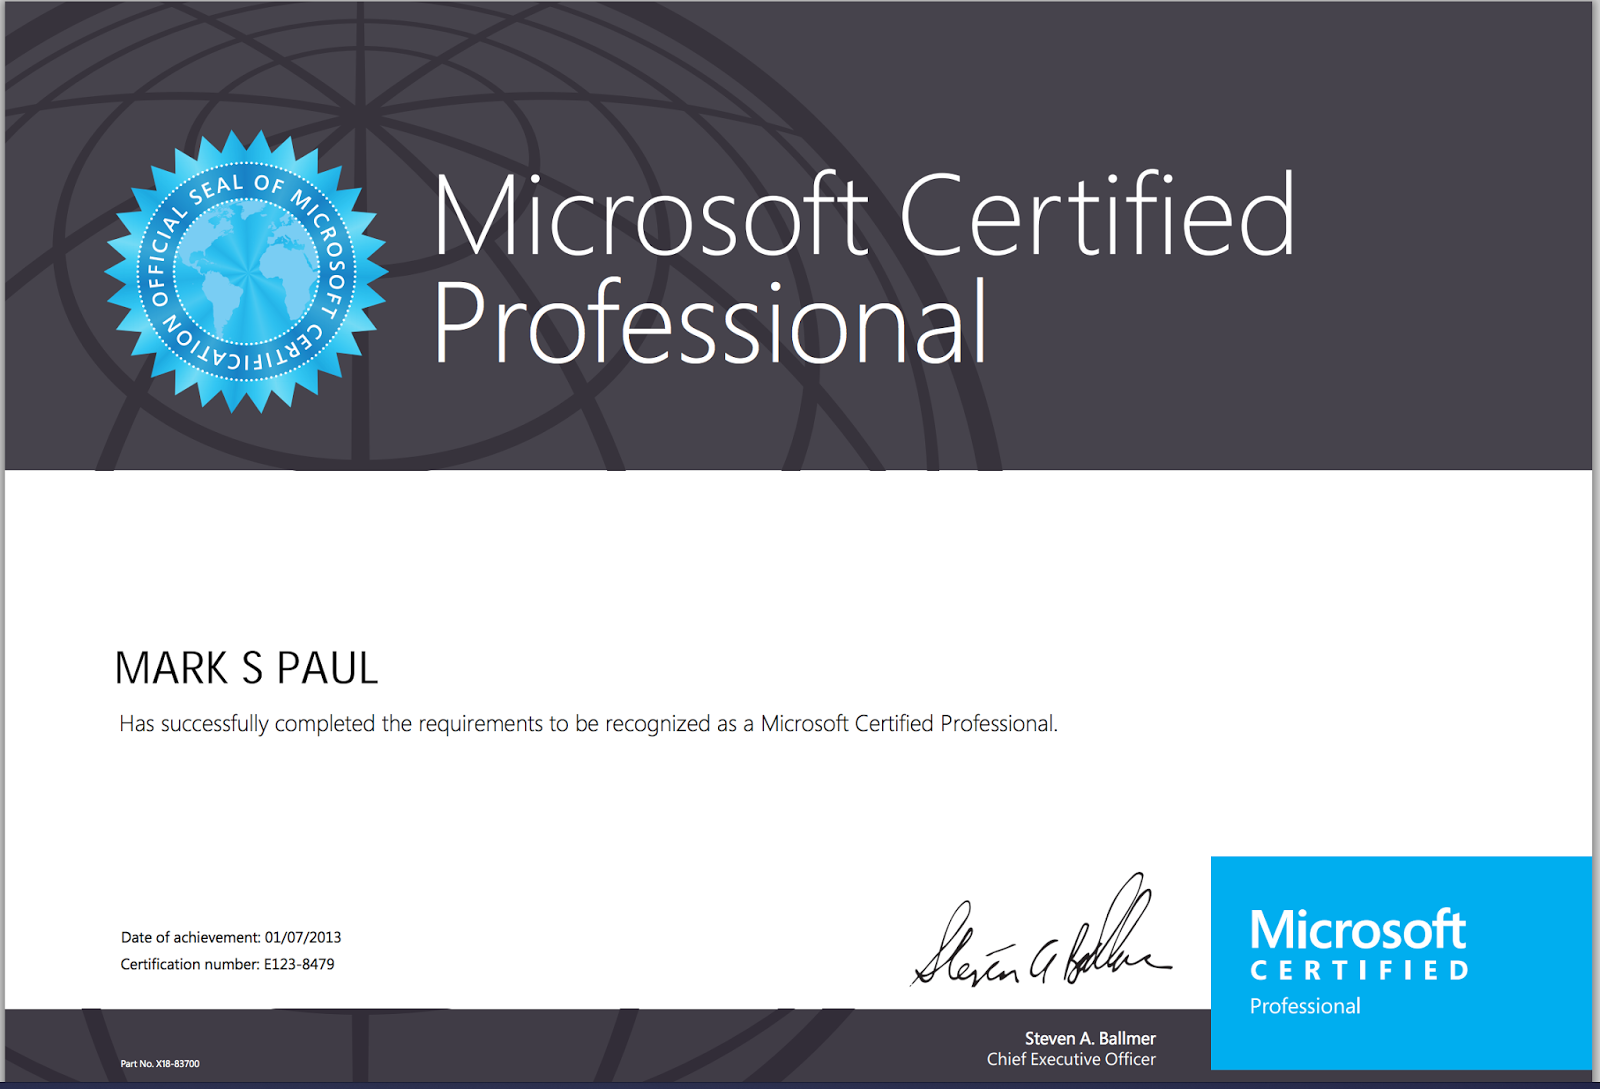 How to become a microsoft certified professional microsoft how to become a microsoft certified professional by becoming a microsoft certified professional you 1betcityfo Images